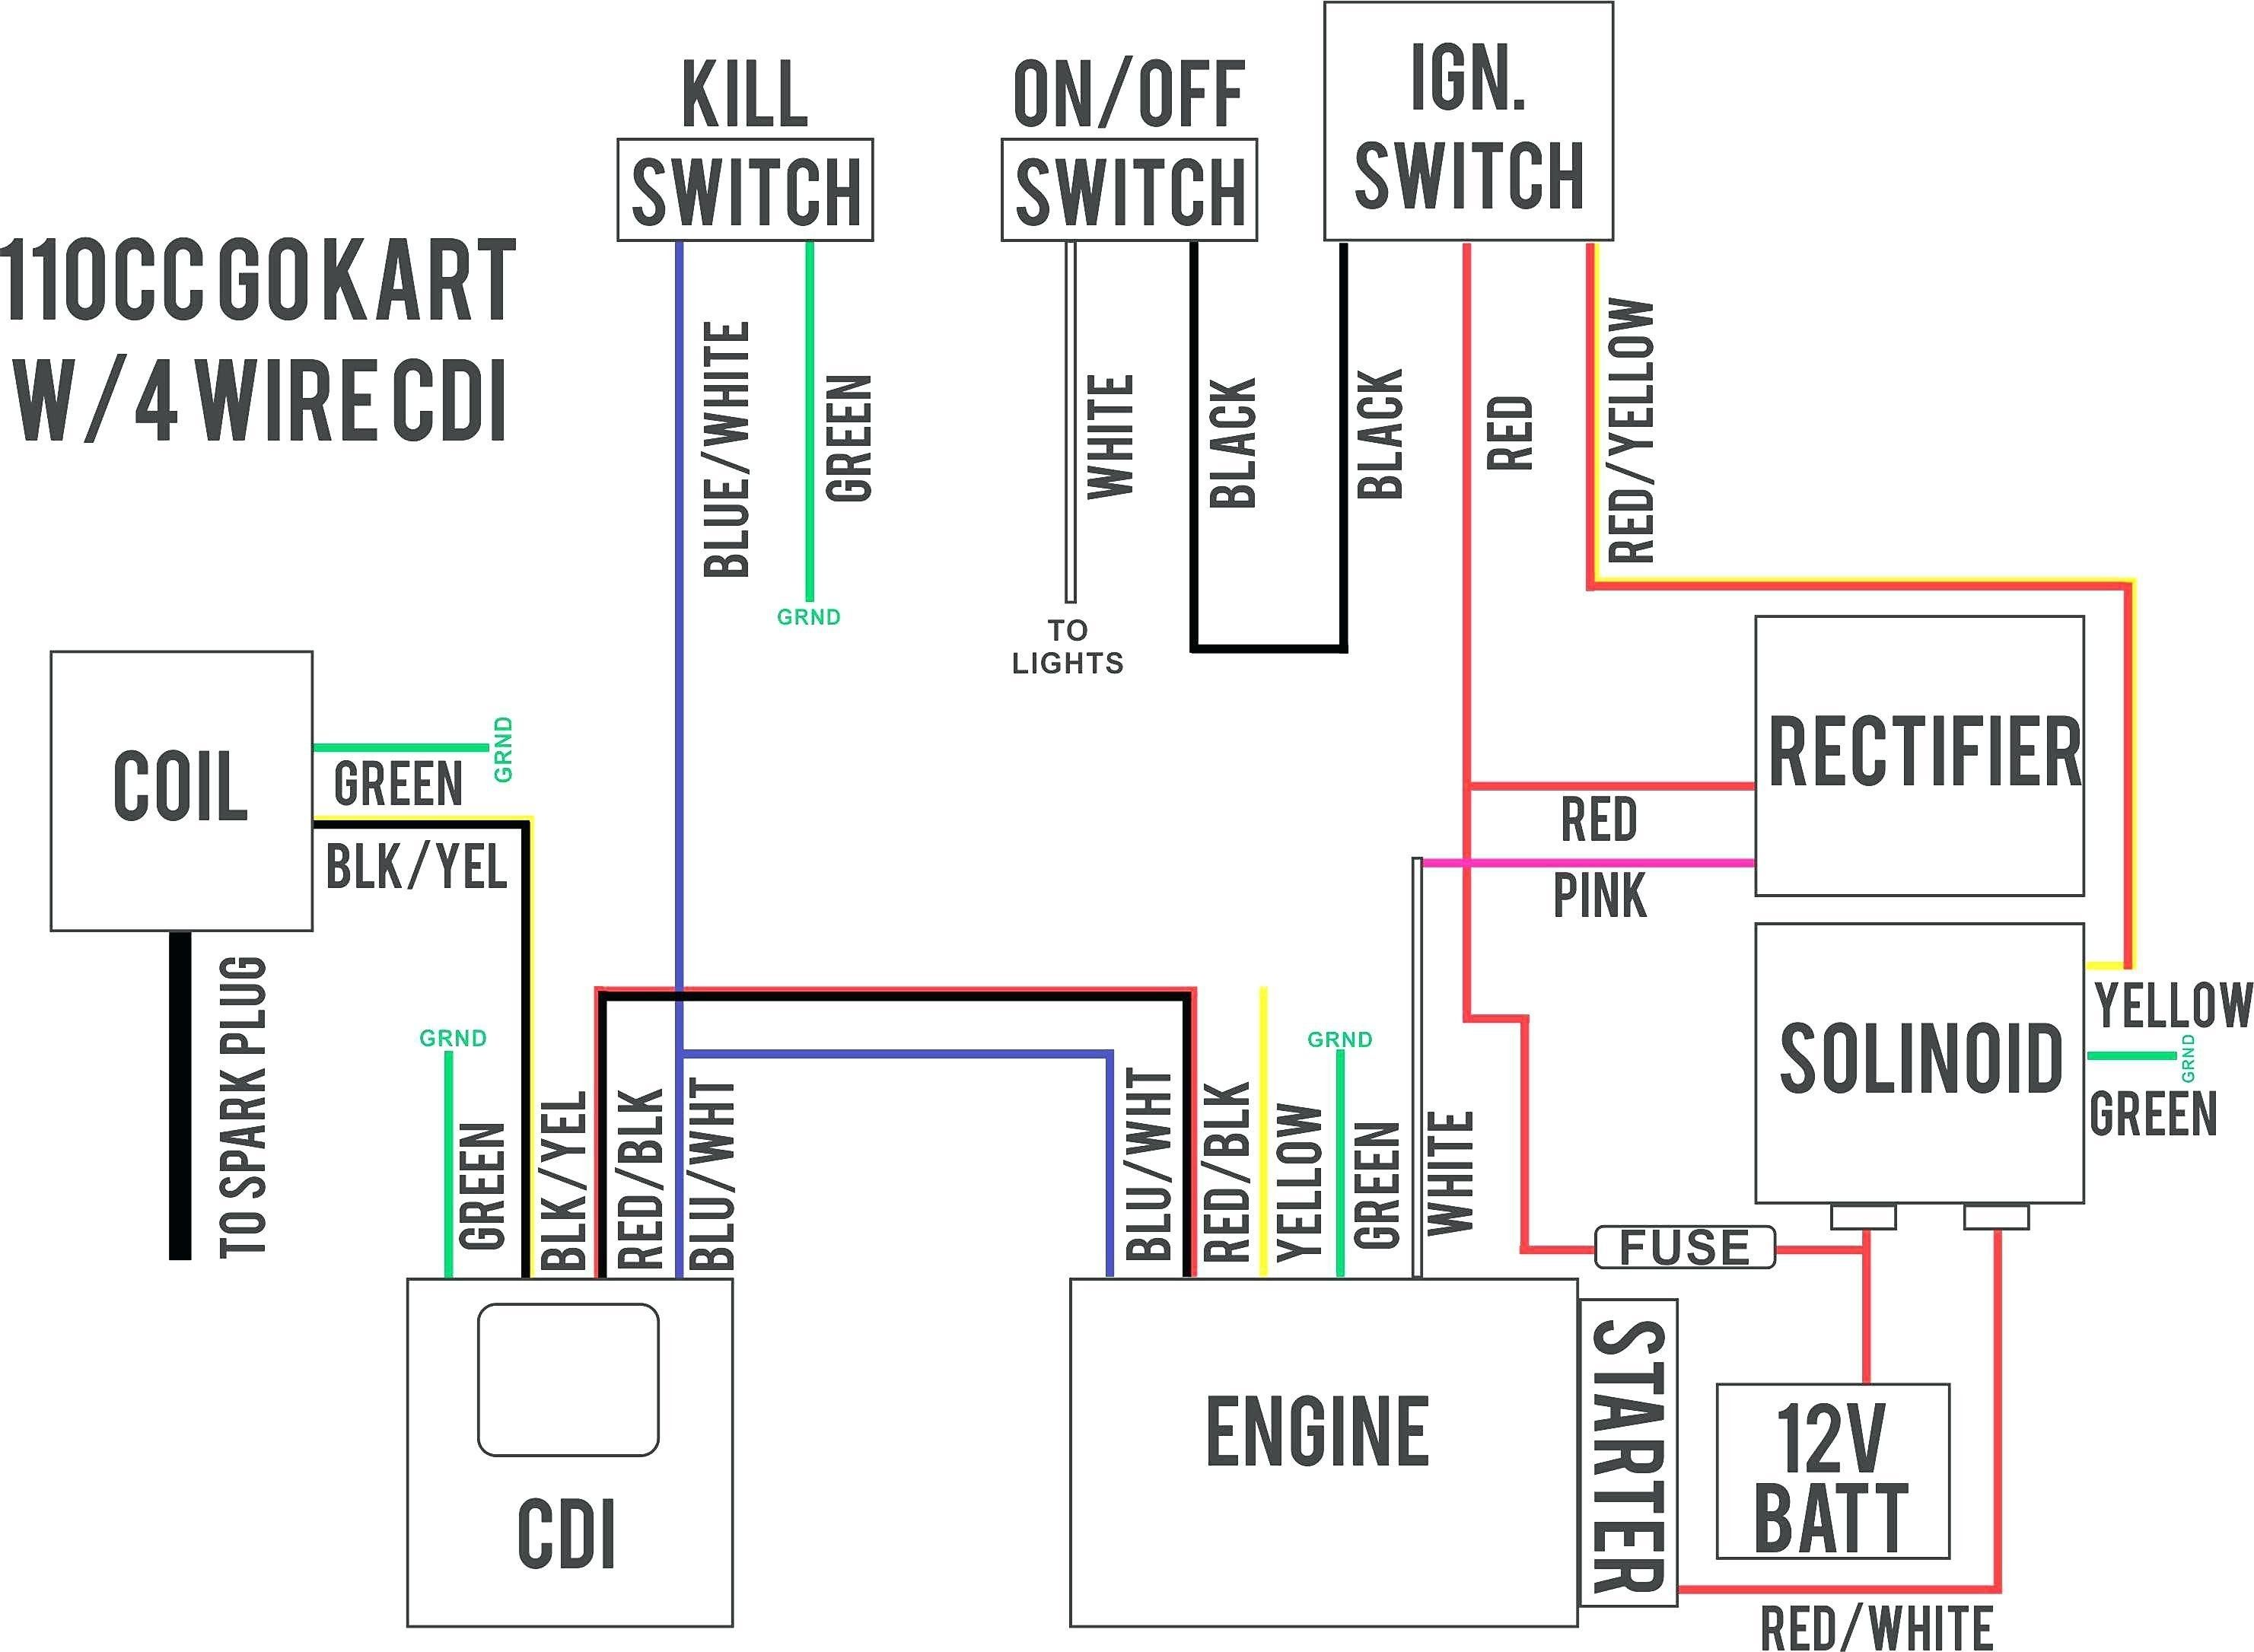 Atv Coil Schematic - Wiring Diagram Liry  Pit Bike Wiring Diagram on 110 pit bike parts, 110 pit bike coil, 110 pit bike honda, 110 electrical wiring diagram, 110 atv wiring diagram, 110 pit bike spark plug, 110 pit bike timing, 110 mini chopper wiring diagram, 110 loncin wiring diagram,